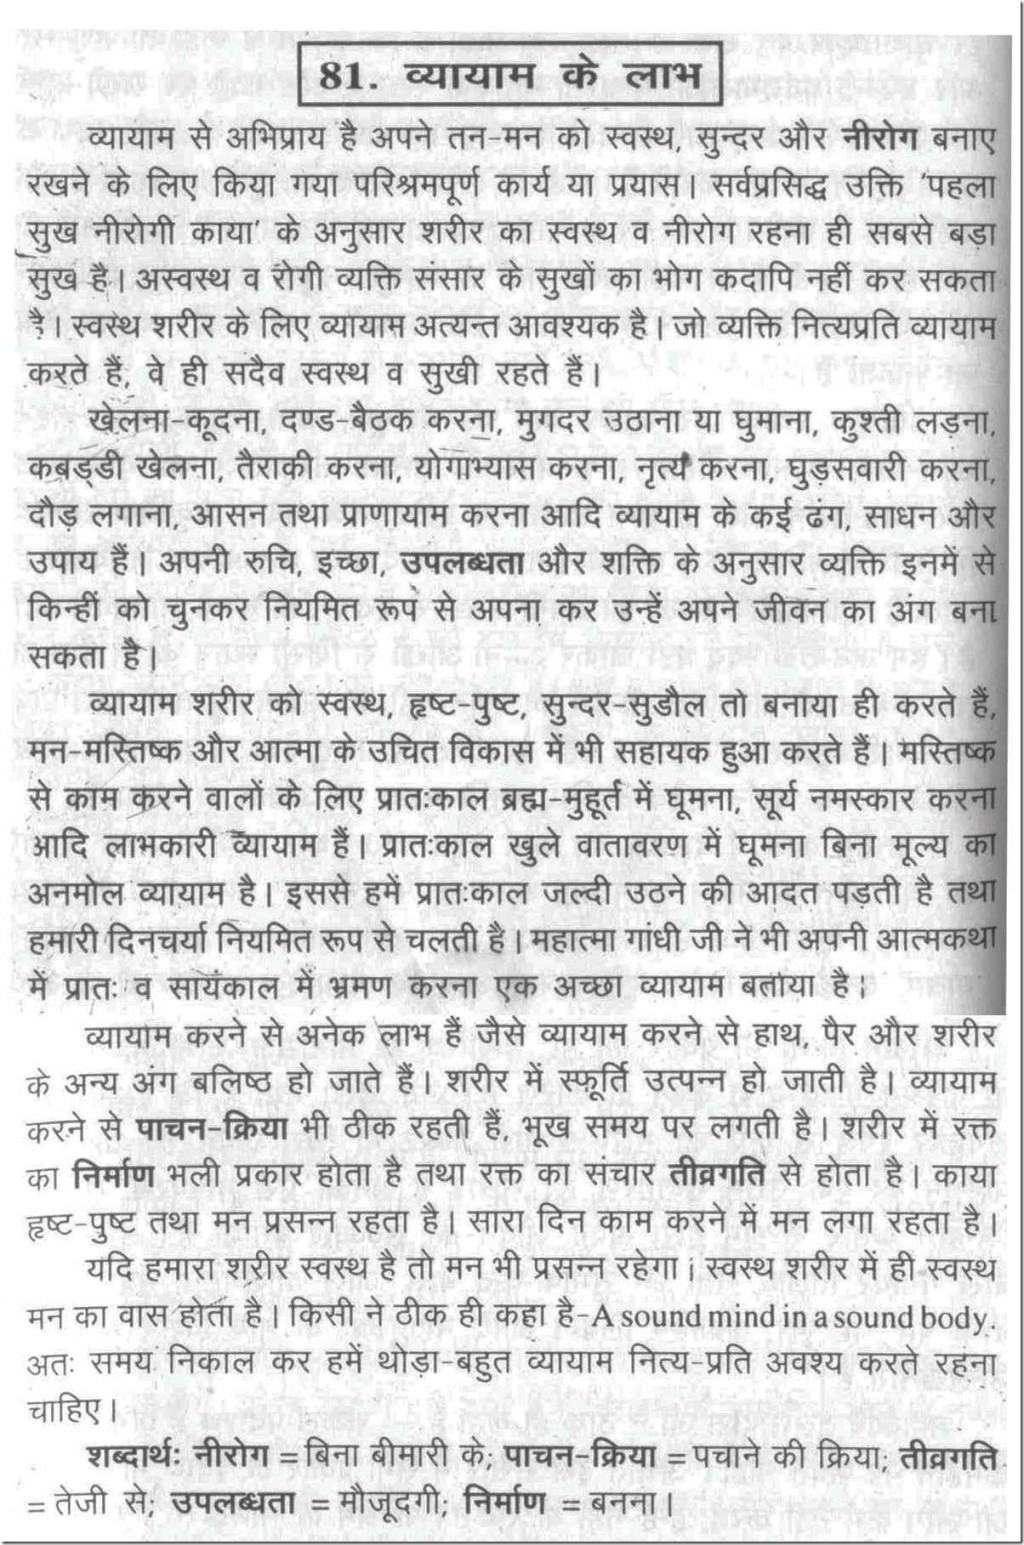 011 2563478896 Essay On Health And Fitness Through Food Good Habits In Hindi Exceptional Bad Eating Habit Large